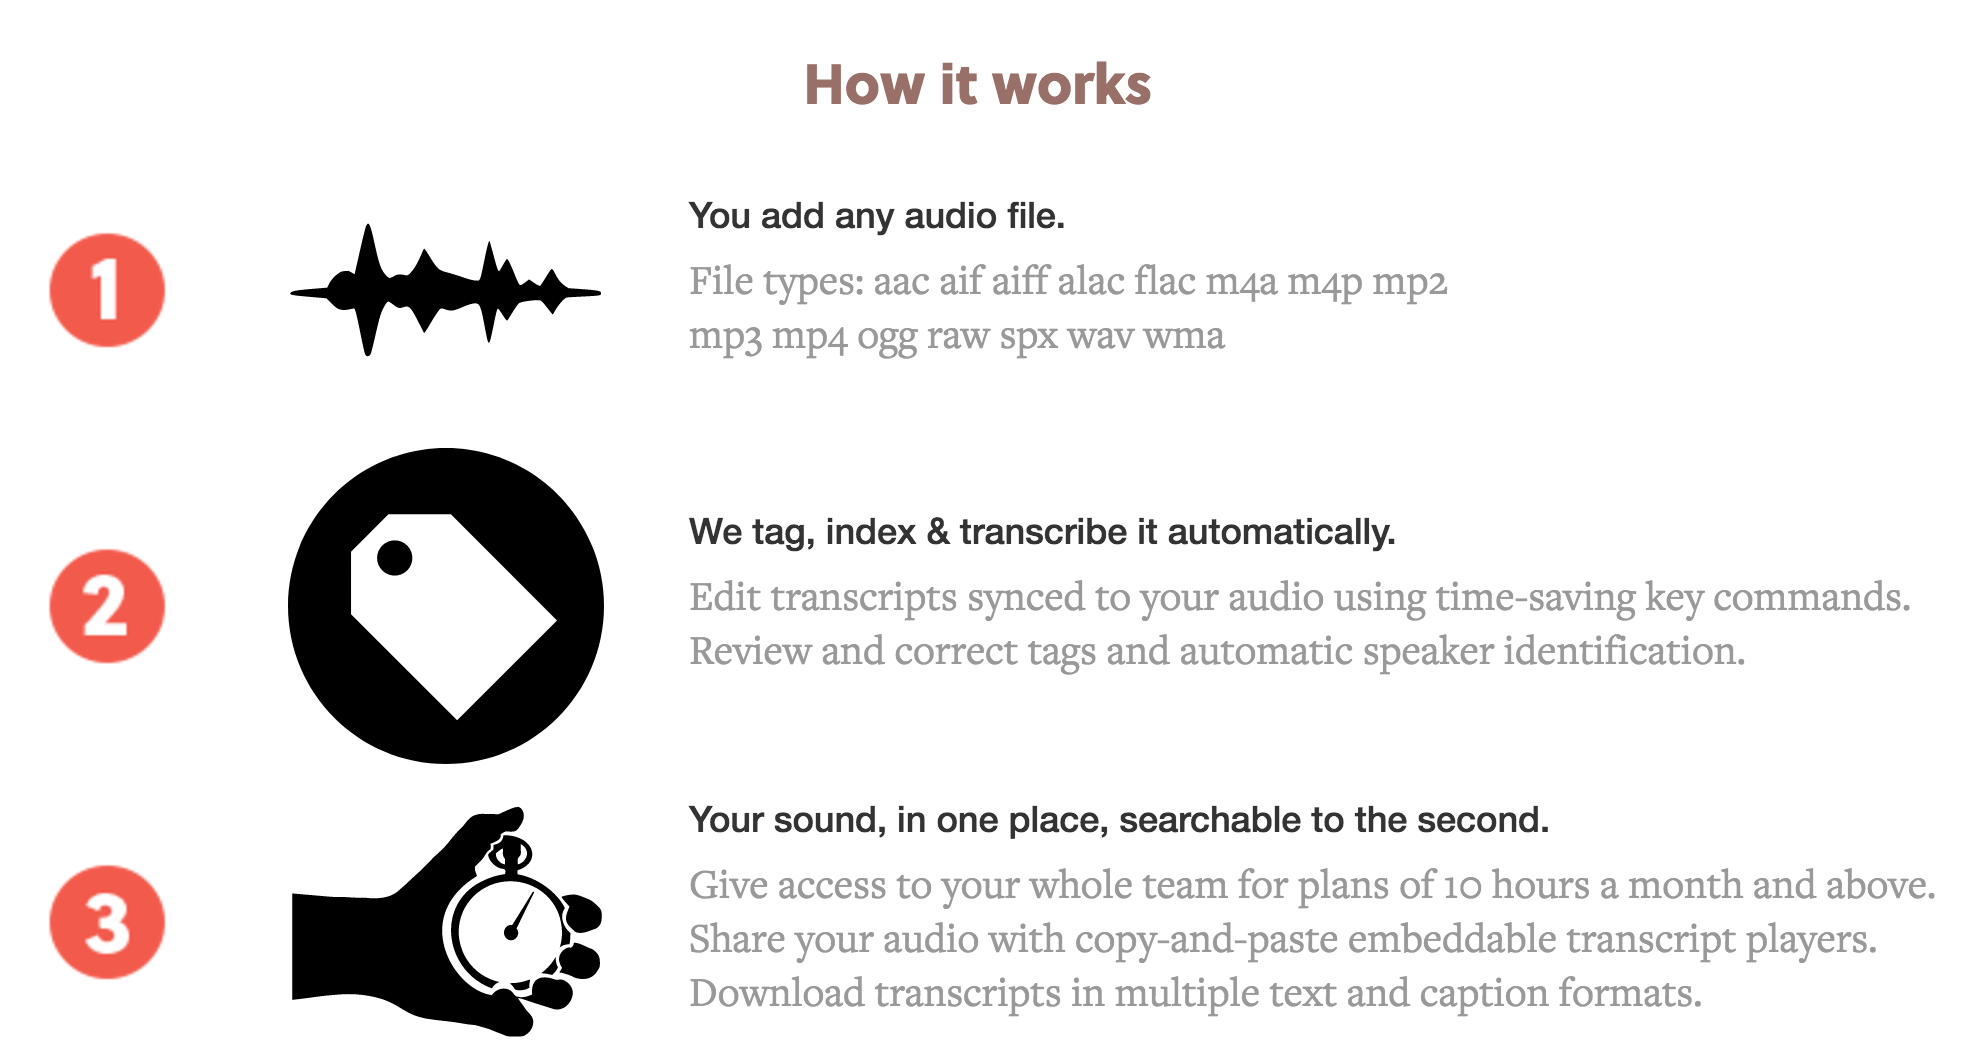 The Best New Ways to Transcribe - Journalism Innovation - Medium